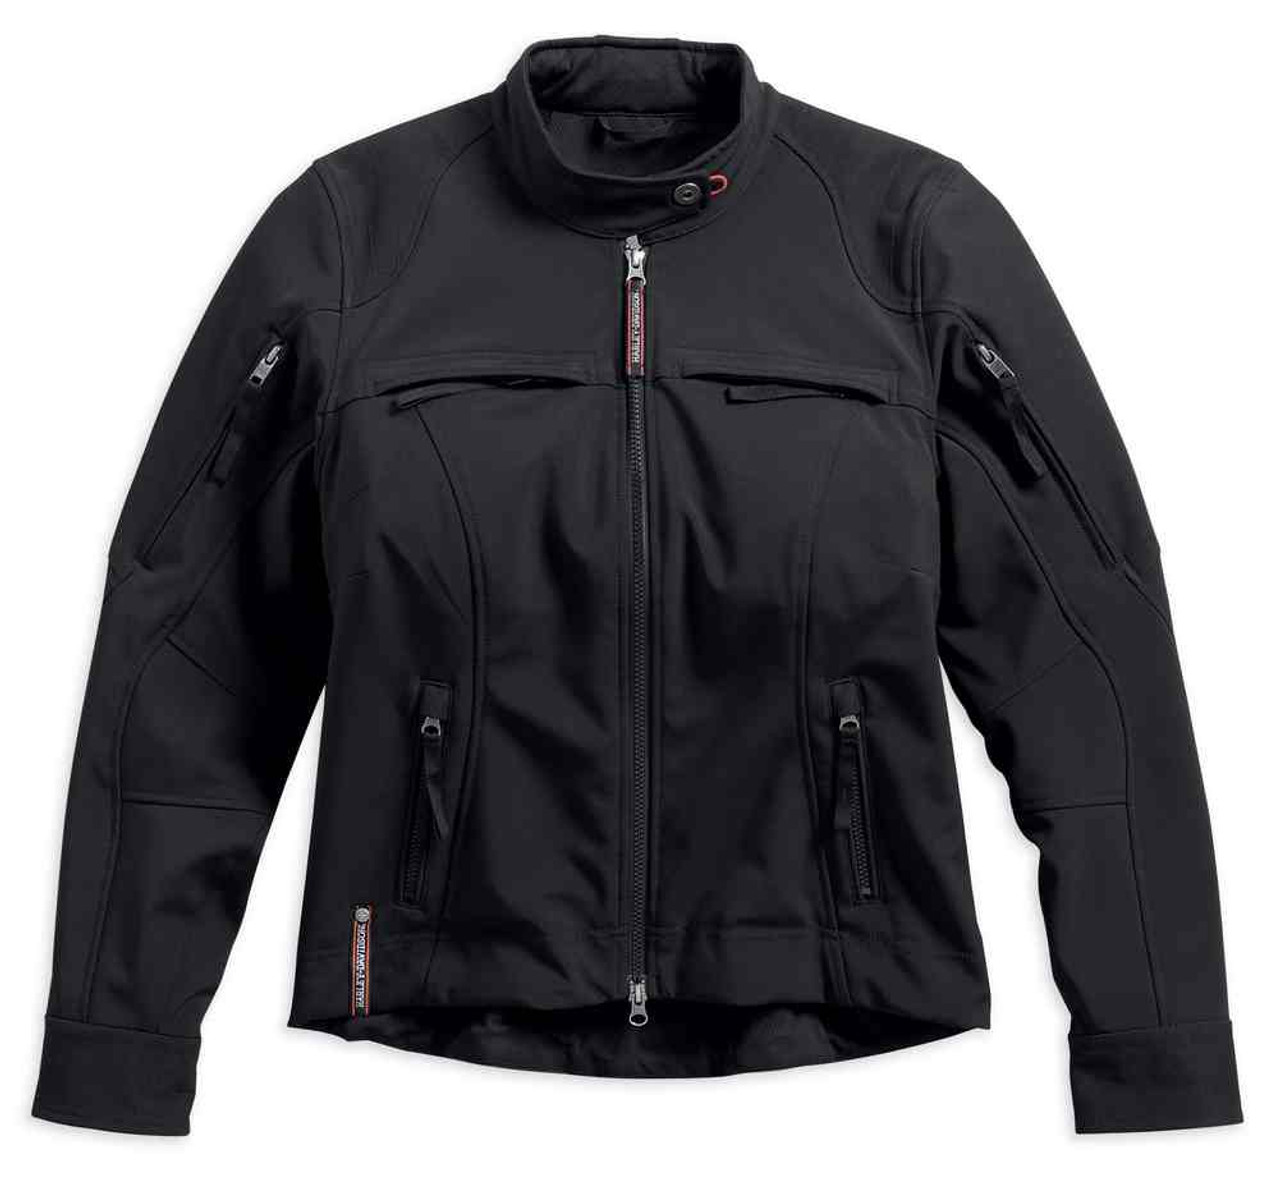 Harley-Davidson Womens Esteem Soft Shell Windproof Water Resistant jacket98318-17VW